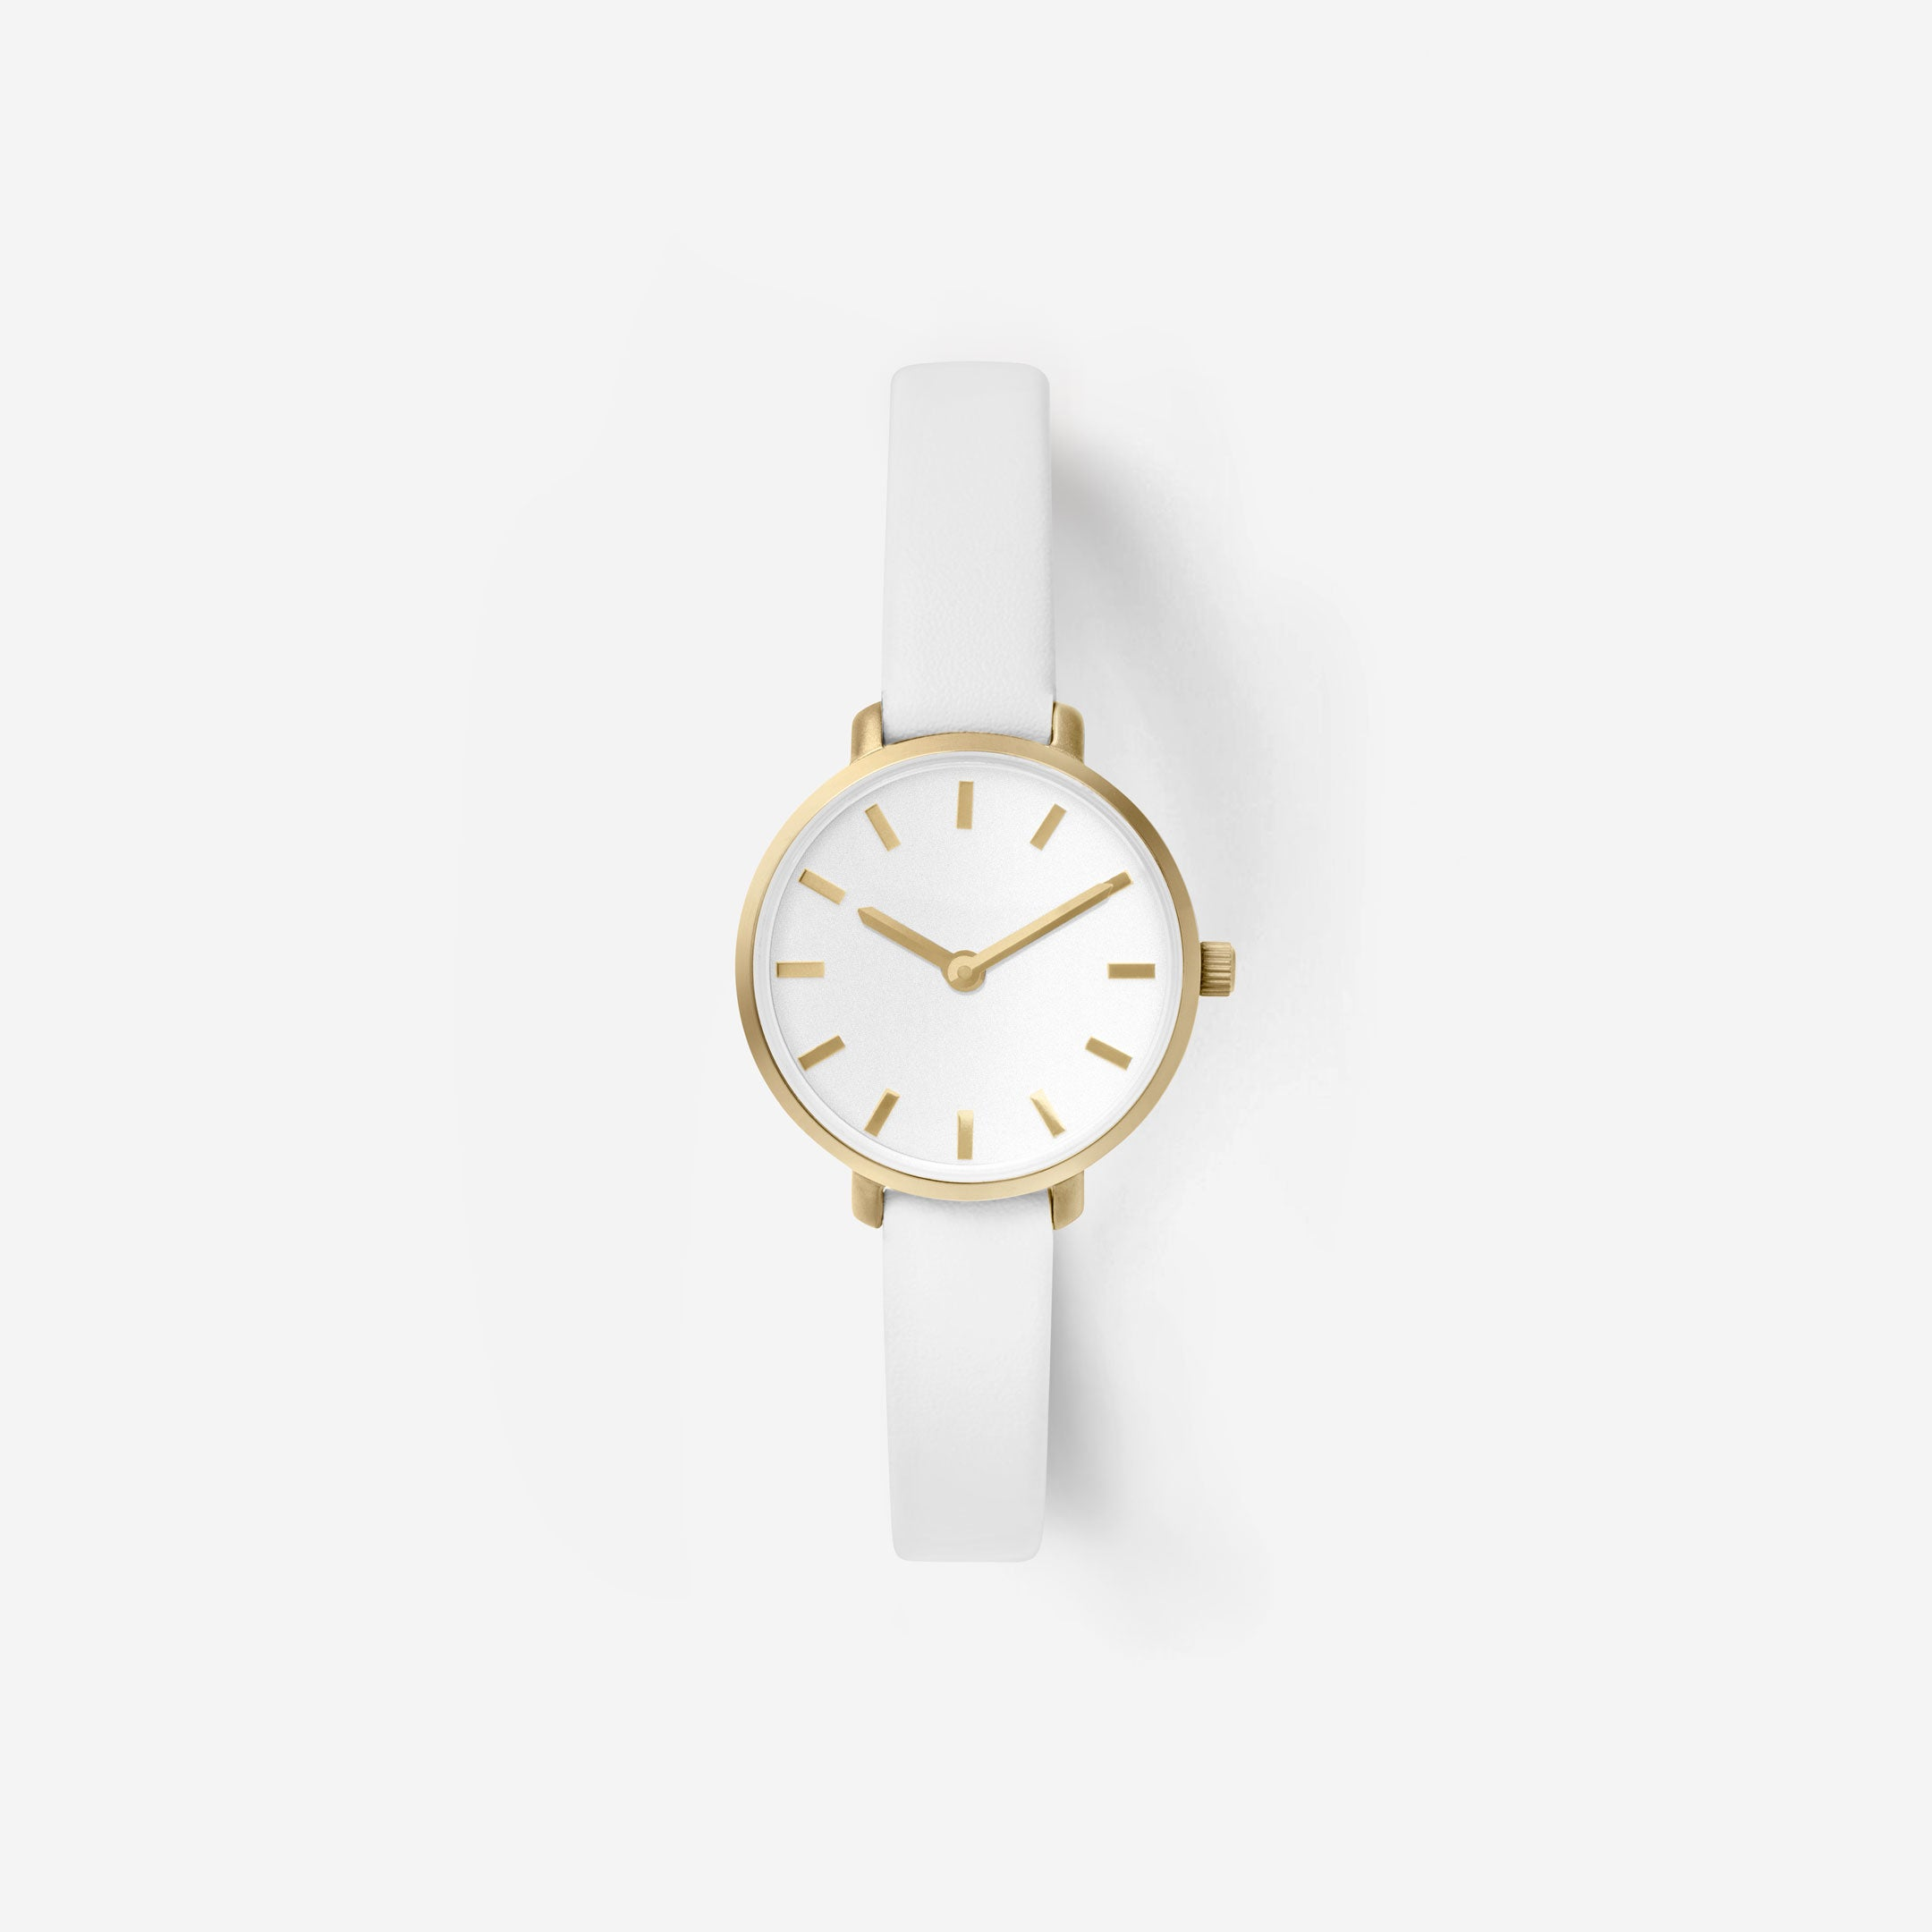 //cdn.shopify.com/s/files/1/0879/6650/products/breda-beverly-1730d-gold-white-leather-watch-front_1024x1024.jpg?v=1522789928